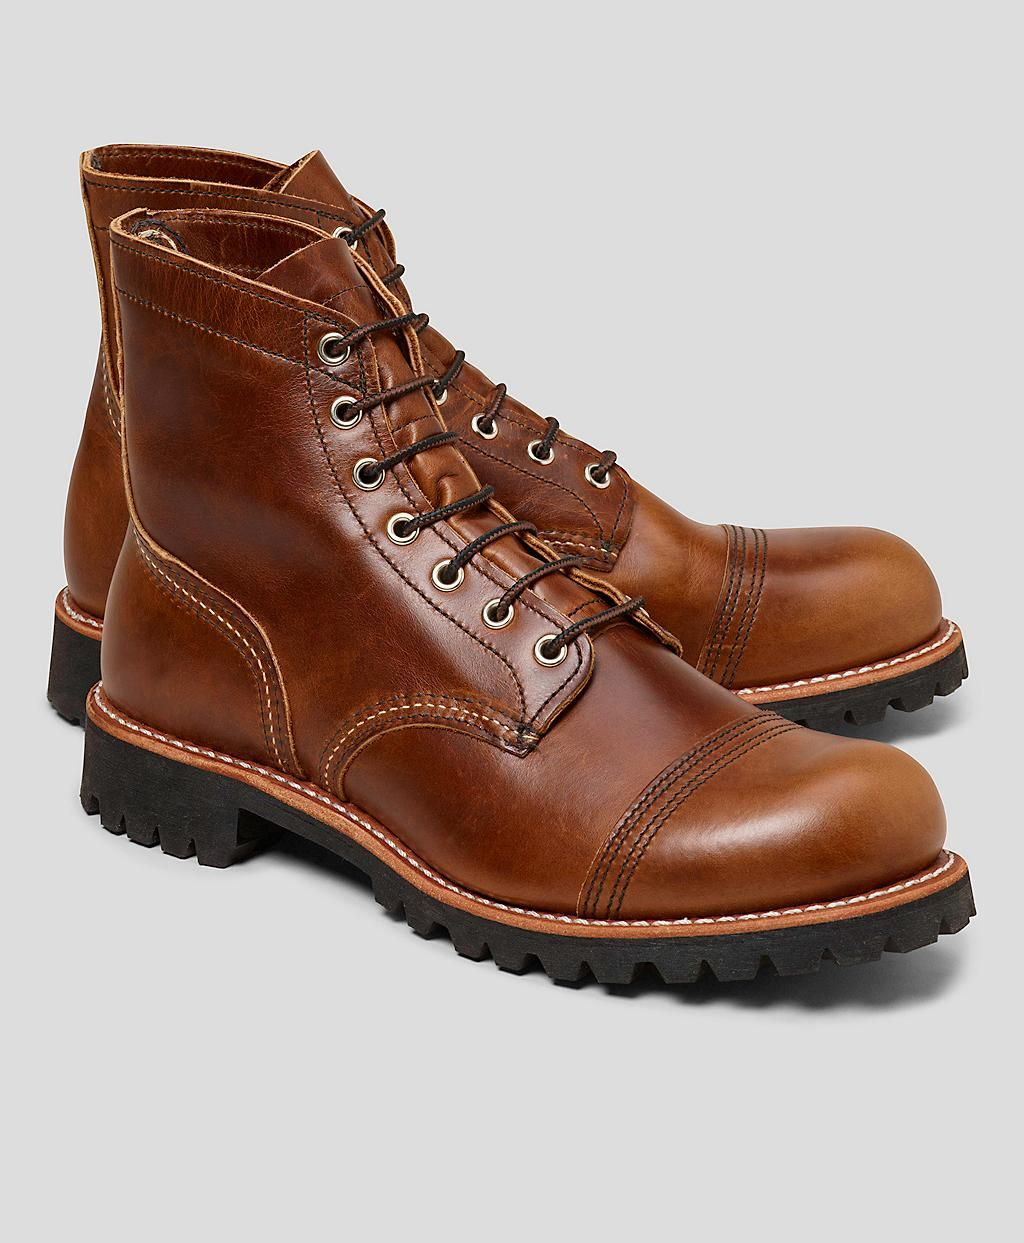 Red Wing Iron Ranger Boots, from Brooks Brothers all they